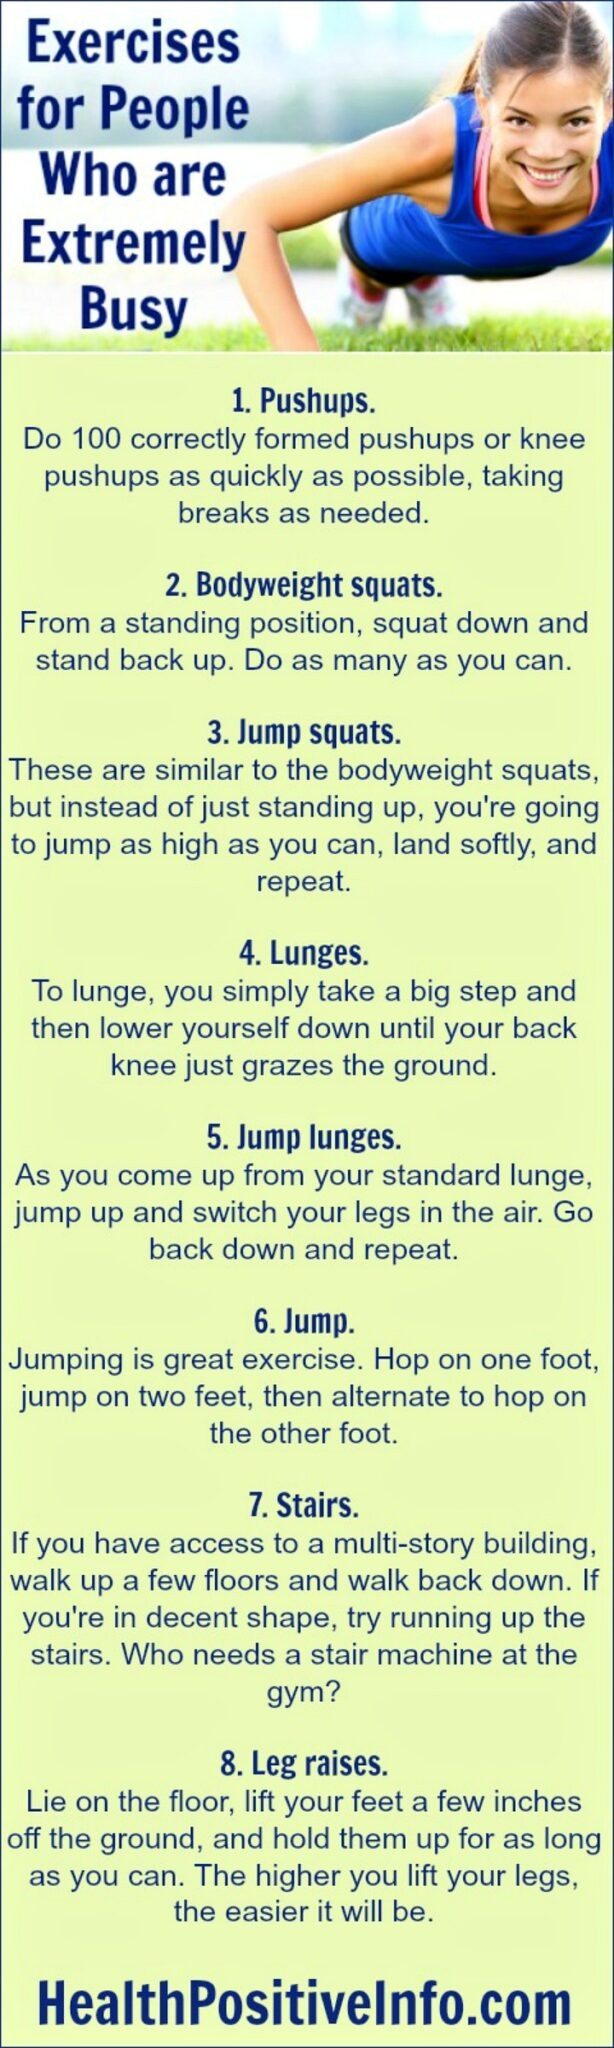 Exercises for People Who are Extremely Busy - https://healthpositiveinfo.com/exercises-for-people-who-are-extremely-busy.html